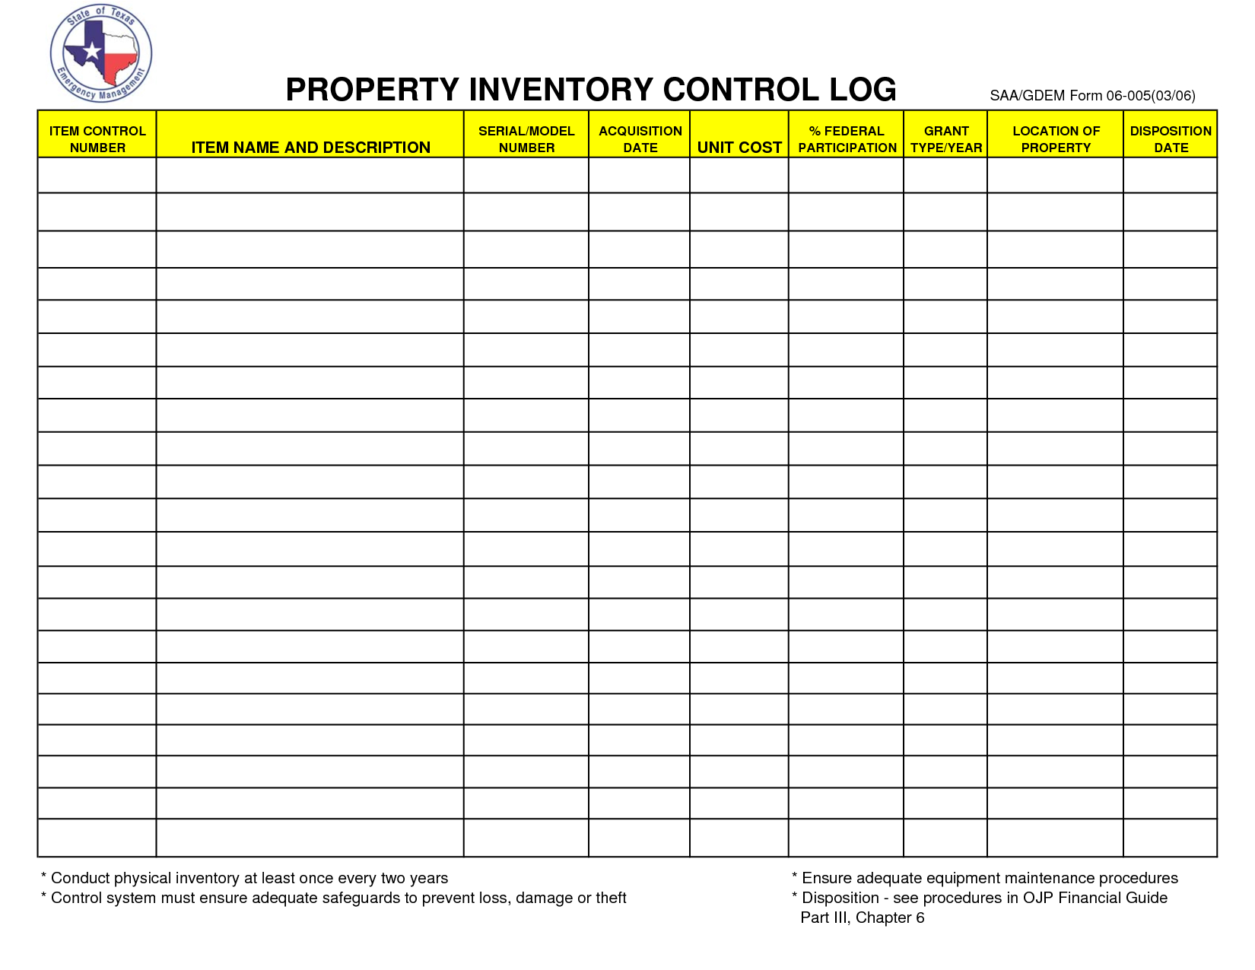 Estate Inventory Excel Spreadsheet For Excel Spreadsheet For Inventory Management And 10 Best Images Of